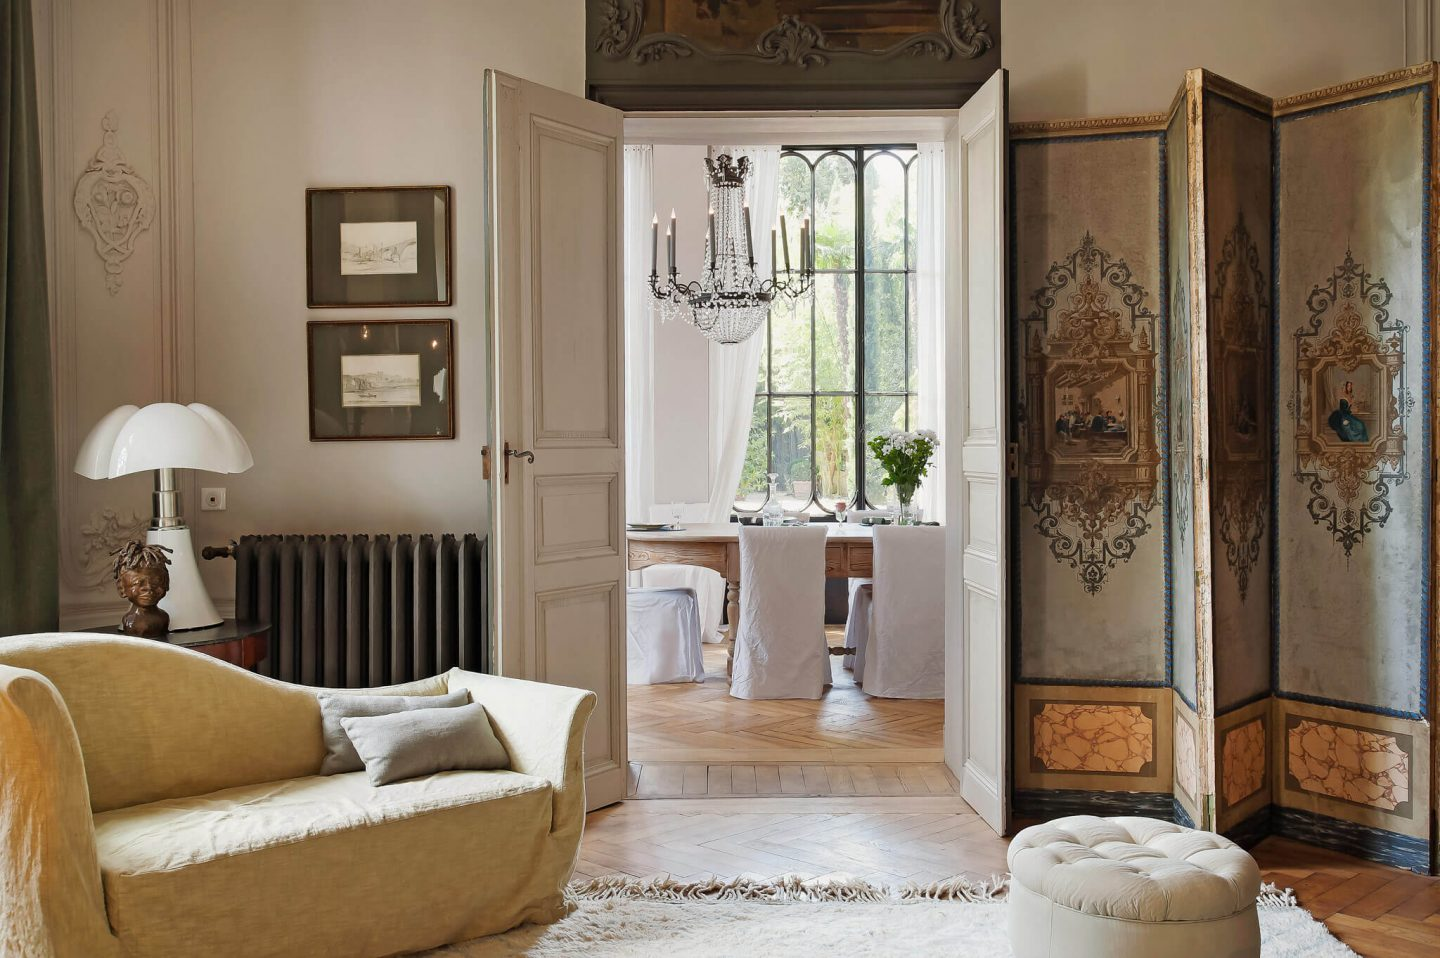 Inspiring interiors, gardens, and art within this restored French chateau Avignon Hotel Particulier. The Serenity Suite is available to book through Haven In...come take a peek! #frenchchateau #avignon #provence #provencal #housetour #french #home #mansion #luxuryhotel #luxuryhome